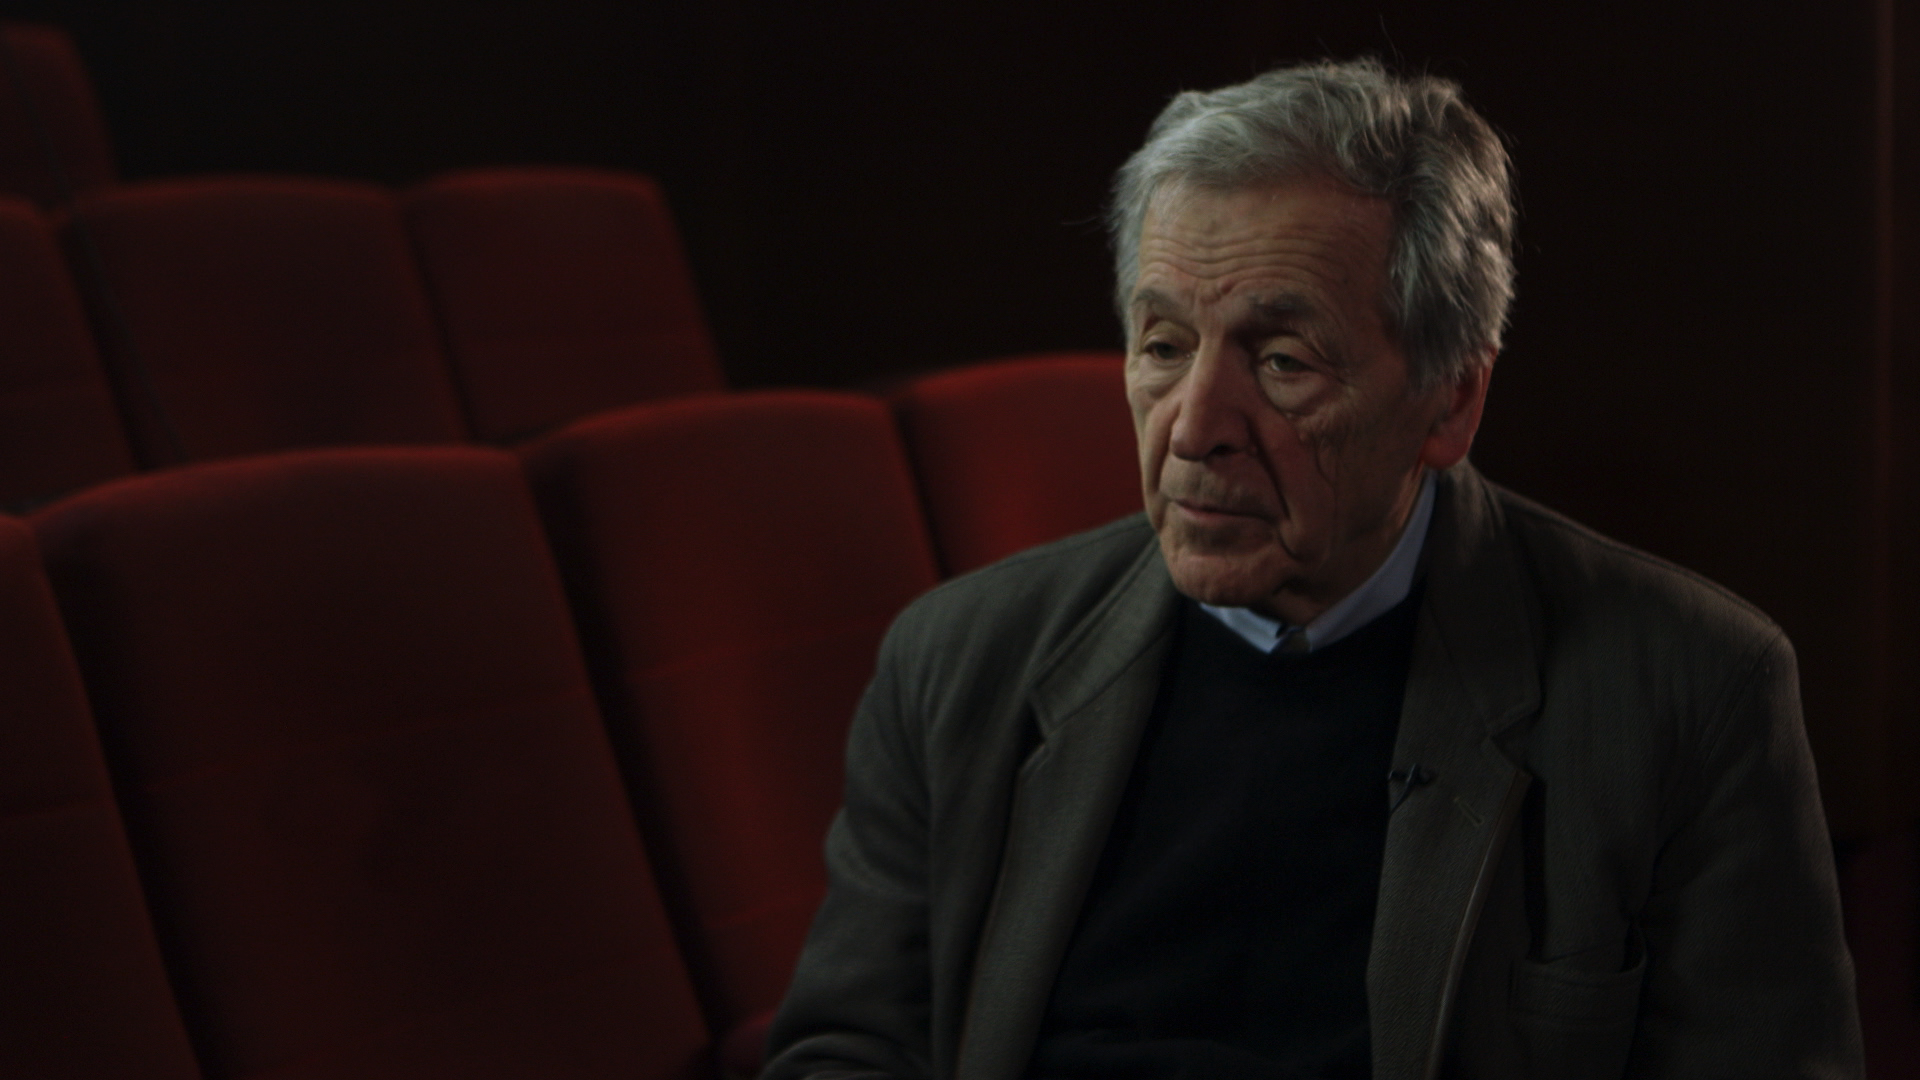 Costa-Gavras on Political Filmmaking